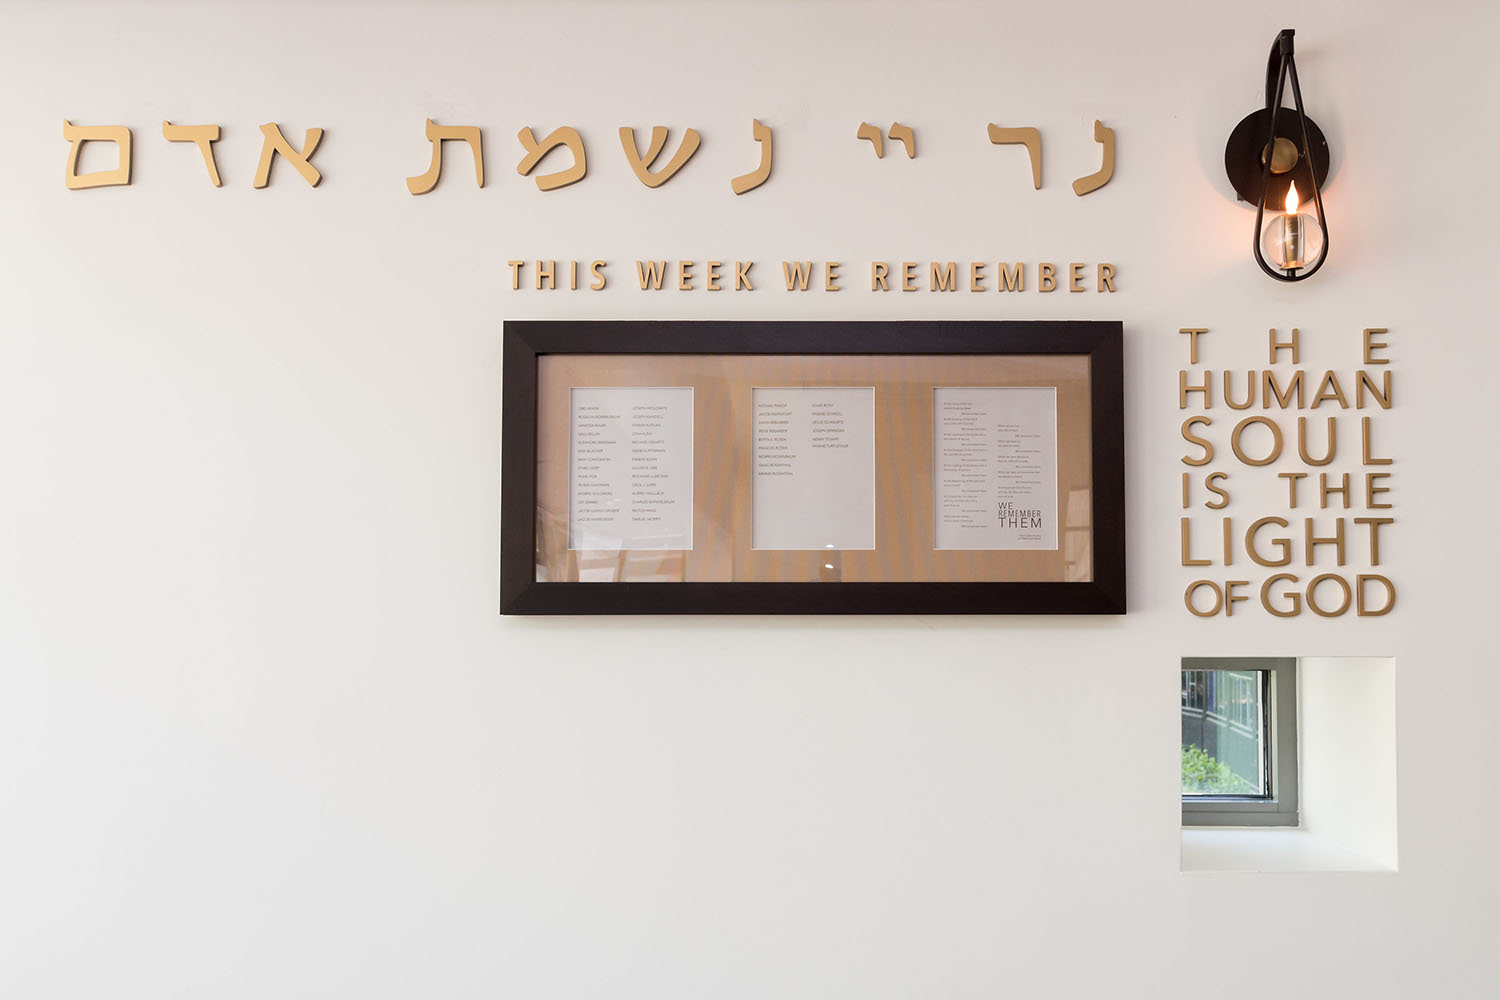 Artwork created for Chapel includes dimensional lettering in Hebrew and English surrounding a light, a frame containing a changing list of names and a square window. I designed the entire arrangement to fit within a unique and somewhat problematic wall design.